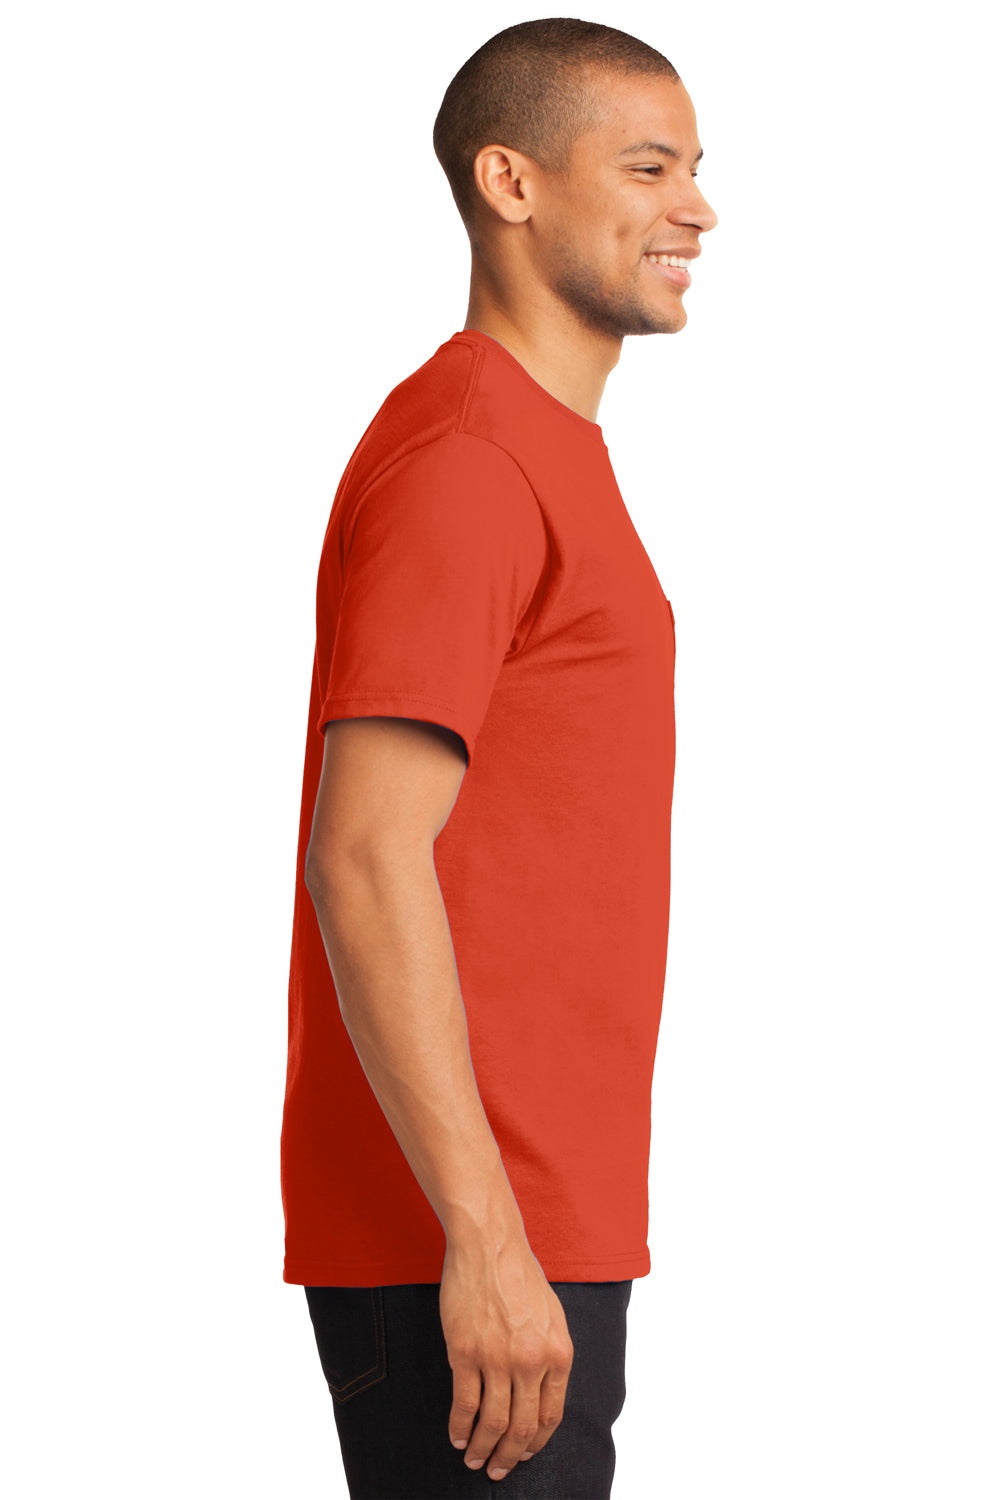 Port & Company PC61P Mens Essential Short Sleeve Crewneck T-Shirt w/ Pocket Orange Side